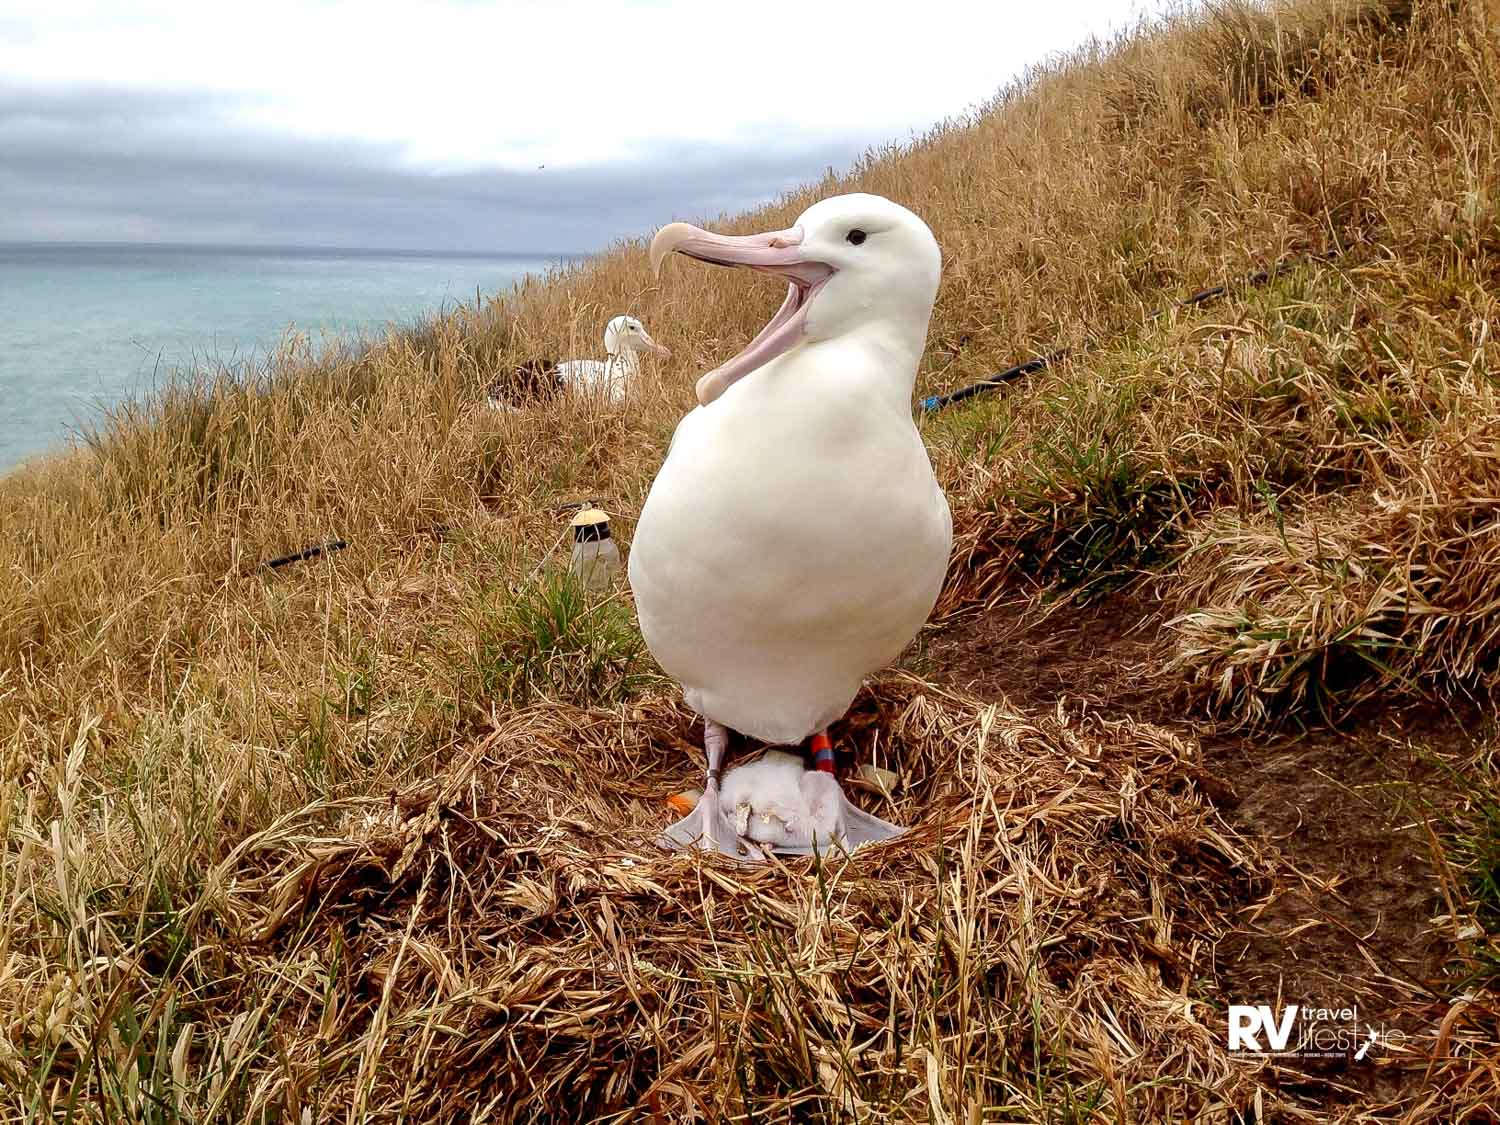 The Royal Albatross Centre also offers tours of Pilots Beach, home to a colony of Little Blue Penguins. During the tour, visitors have the ability to get up close with the world's smallest penguins via a state-of-the-art viewing platform.